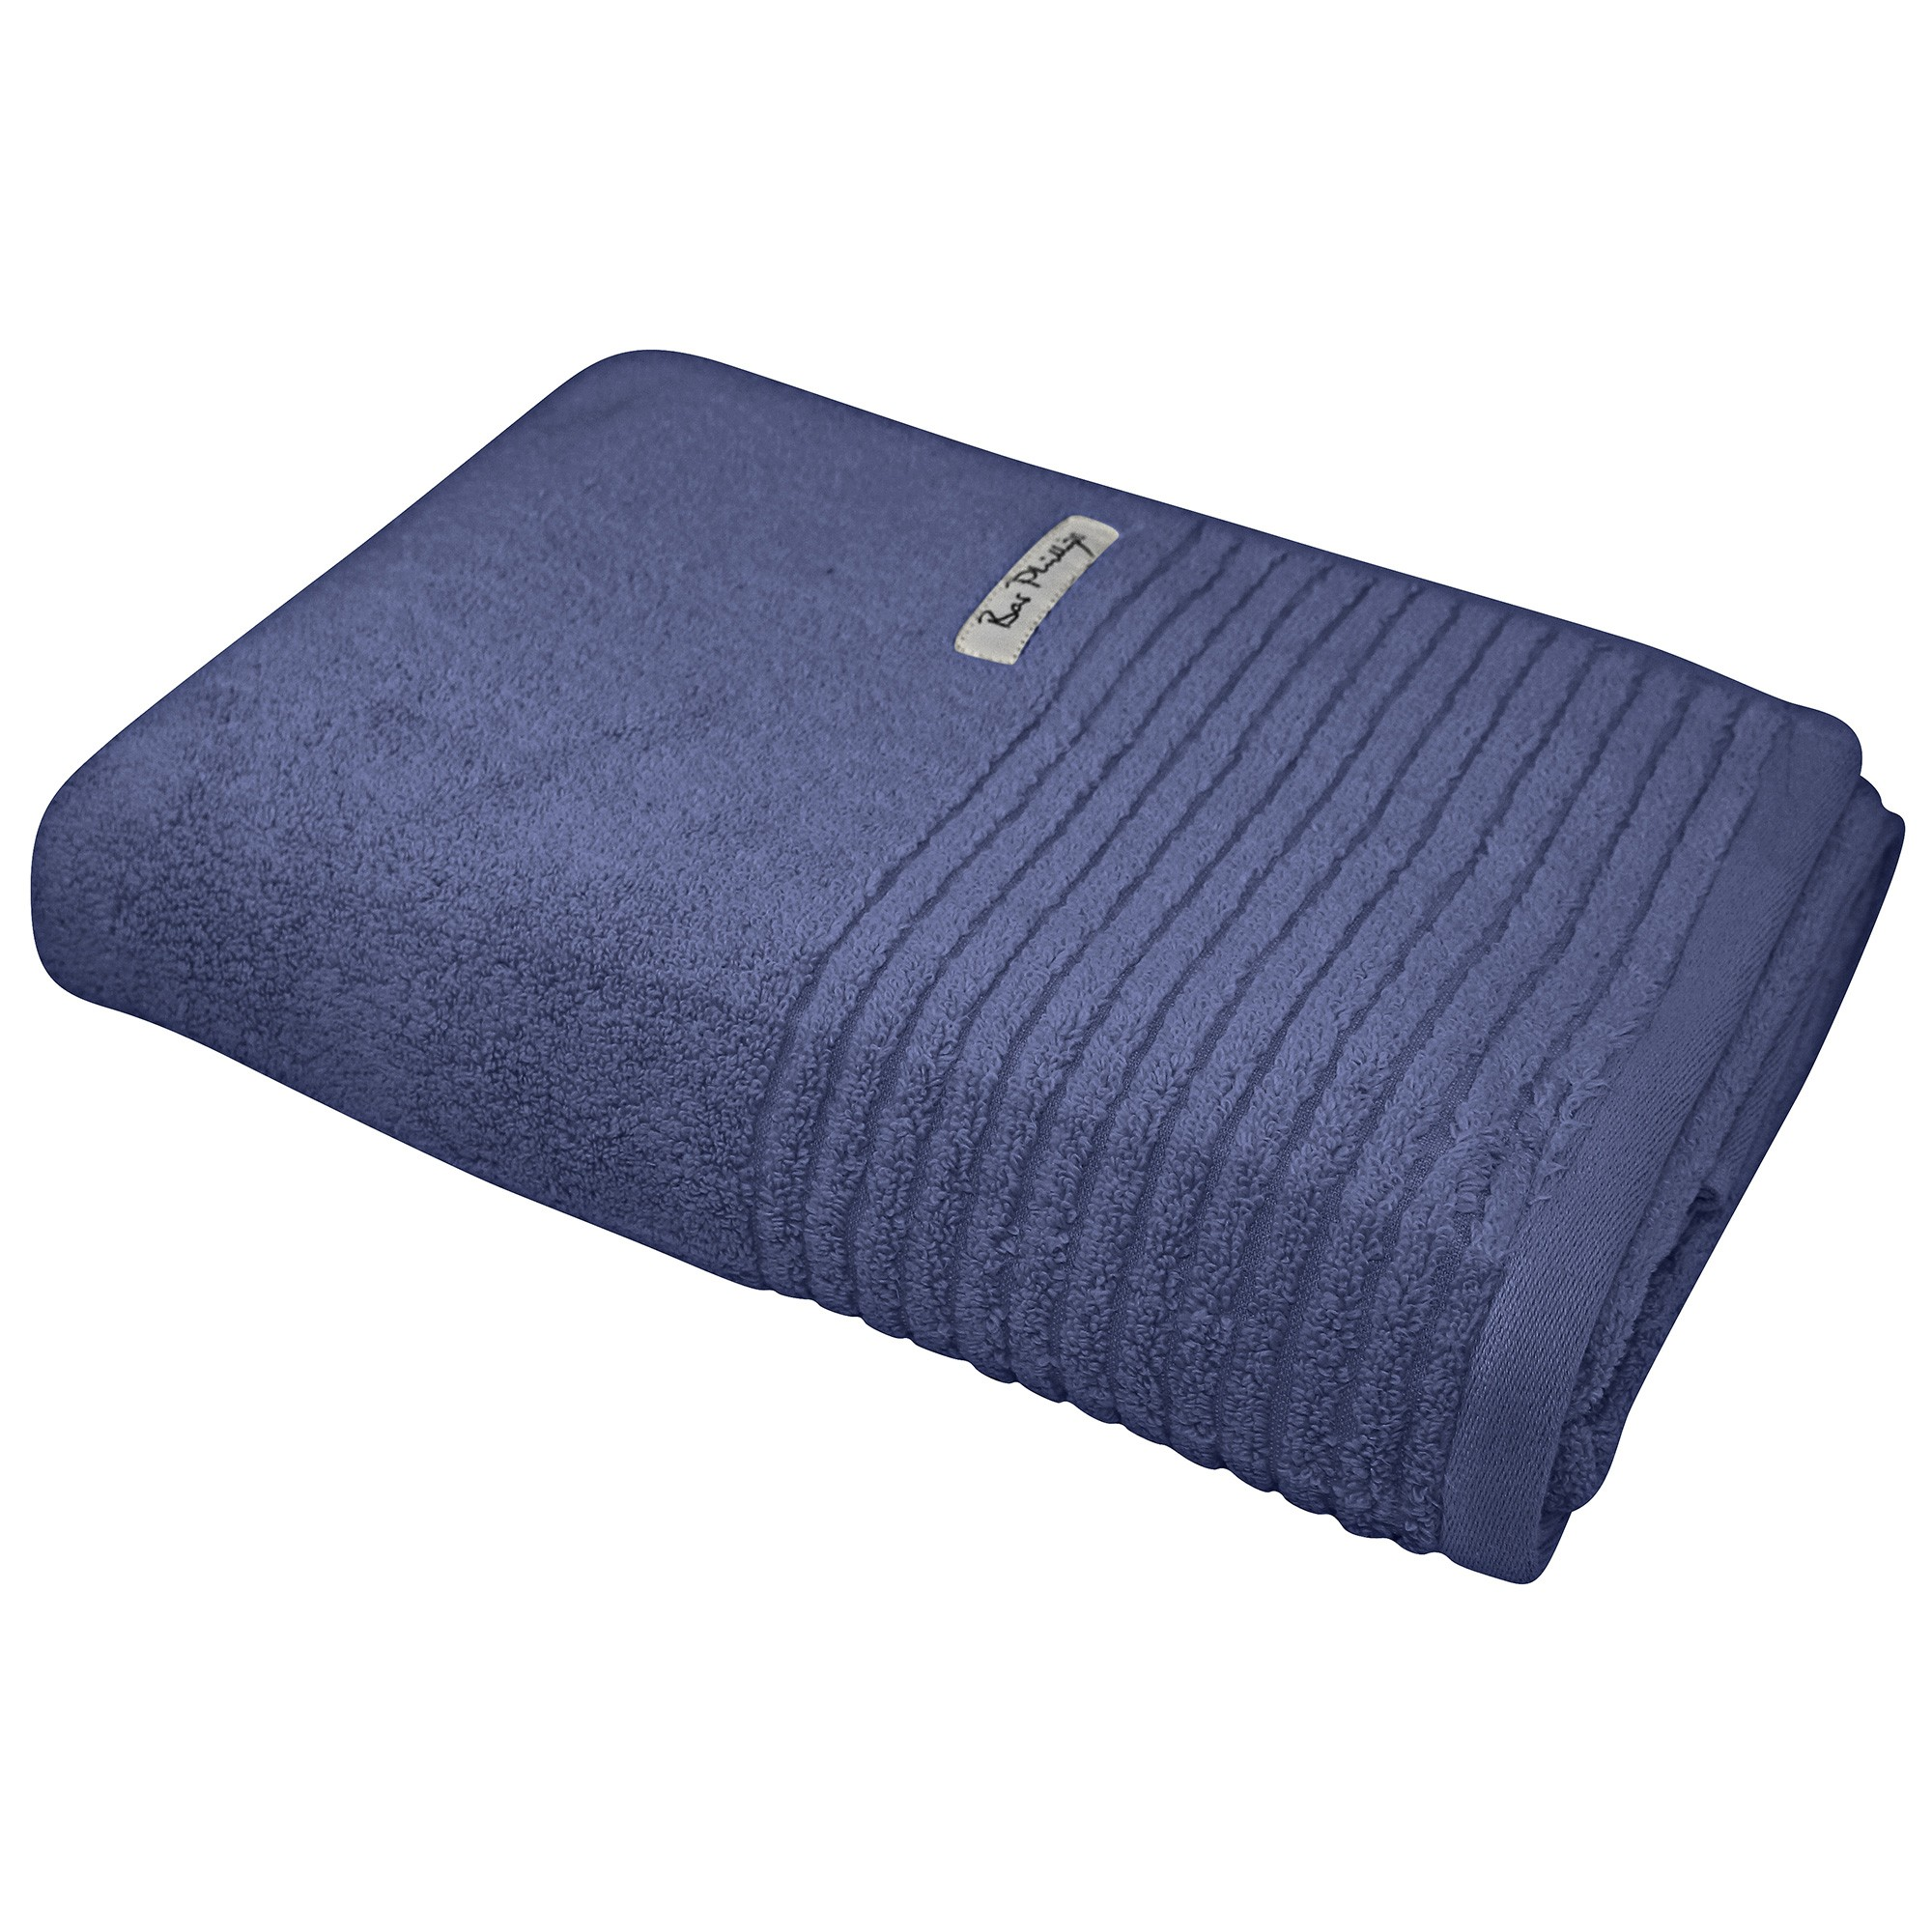 Bas Phillips Hayman Zero Twist Cotton Bath Sheet, Indigo